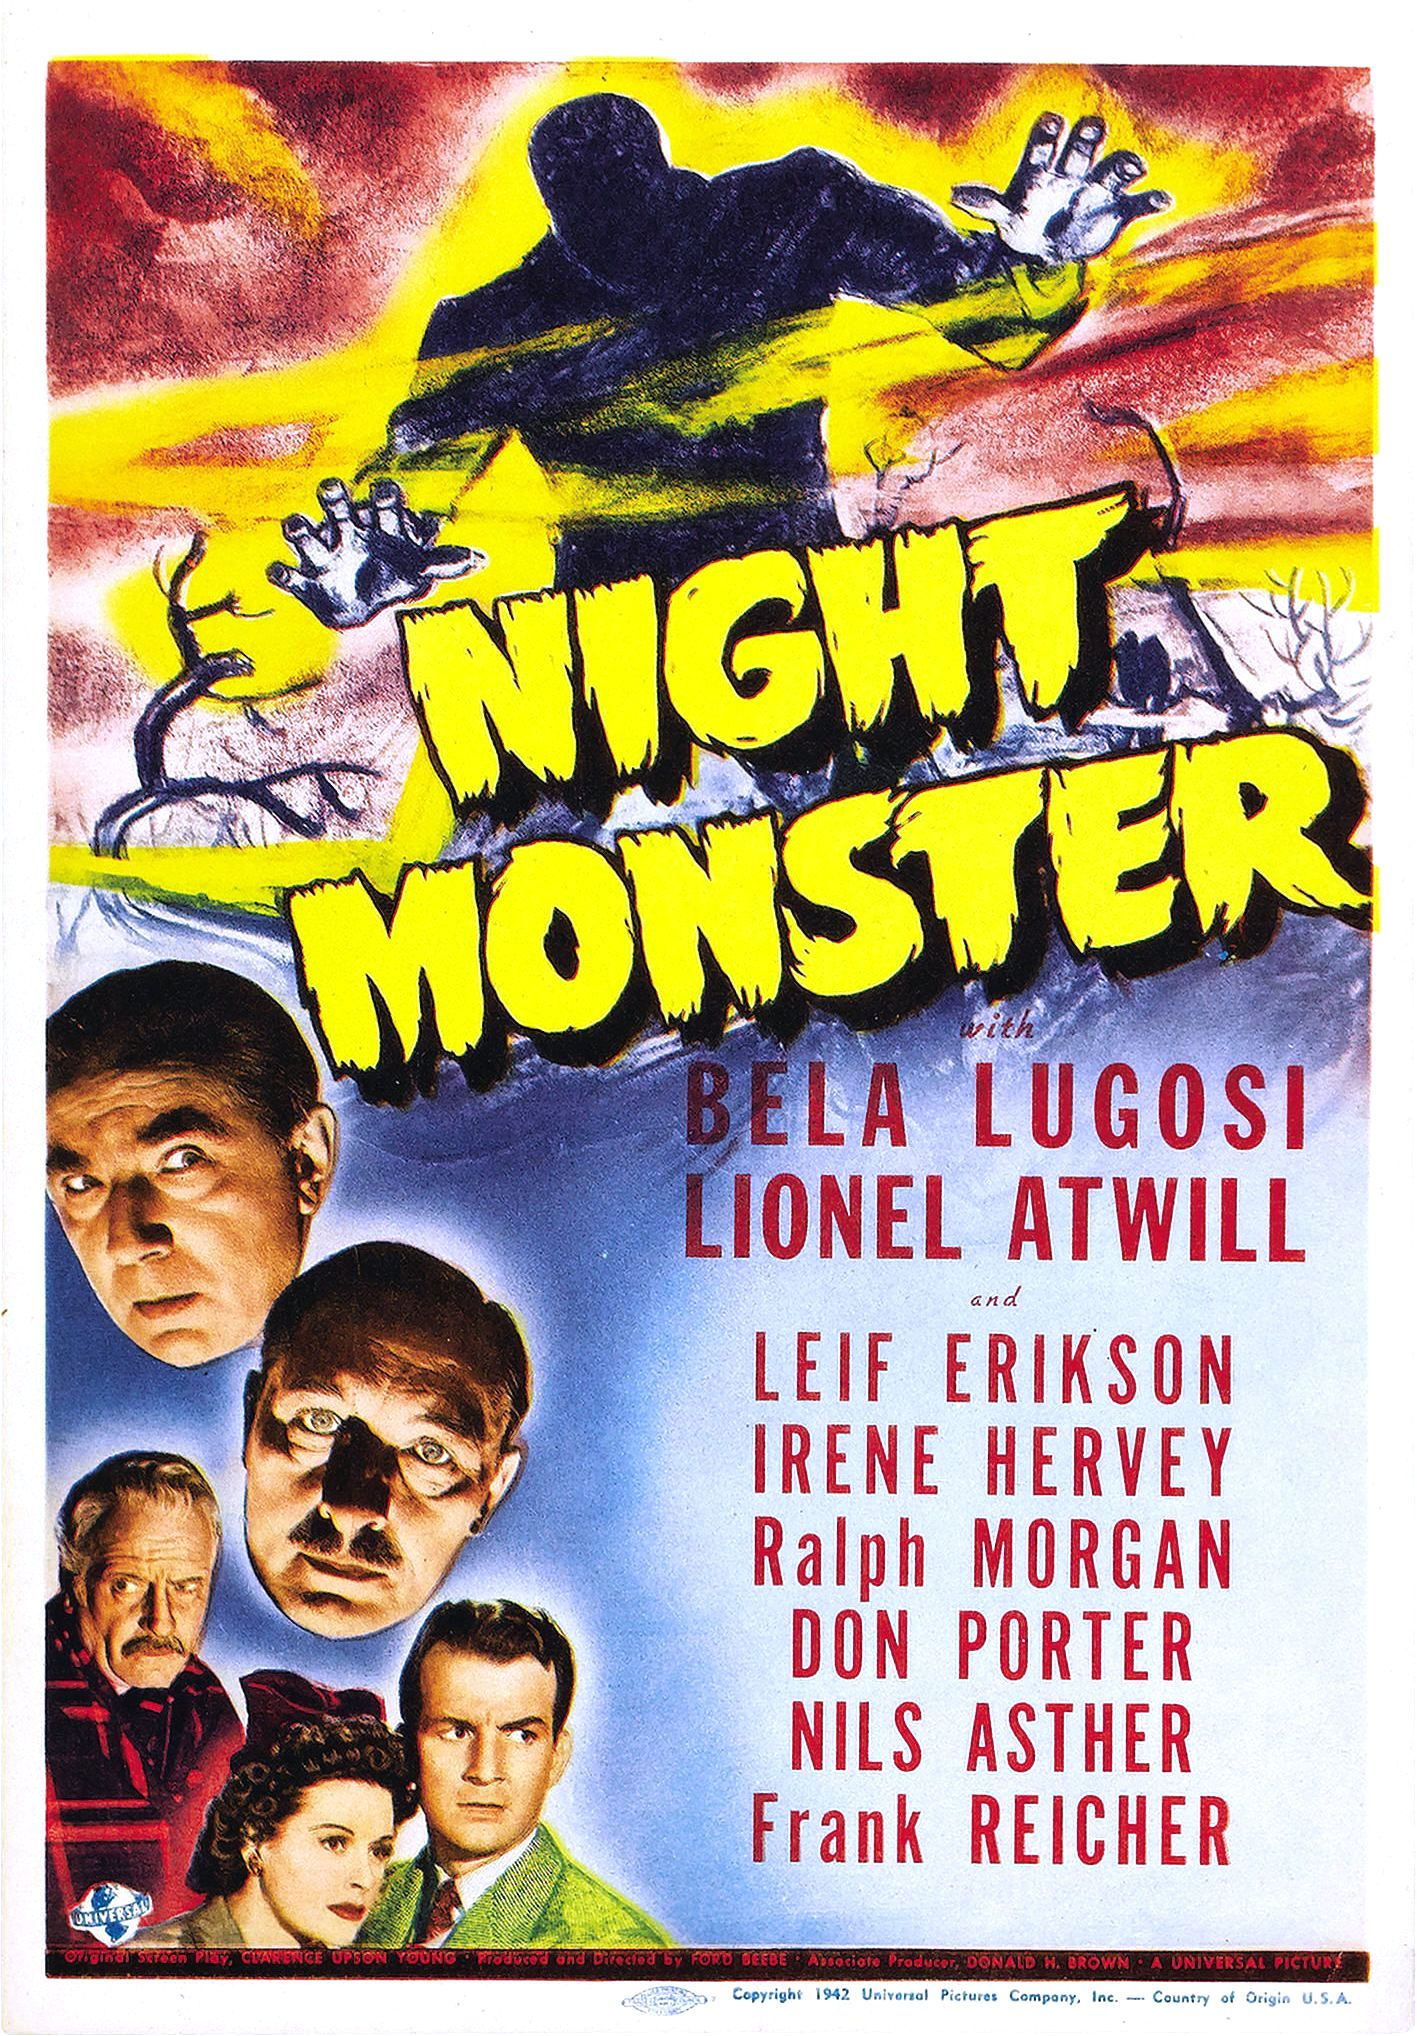 https://i0.wp.com/filmfanatic.org/reviews/wp-content/uploads/2014/02/Night-Monster-Poster.jpg